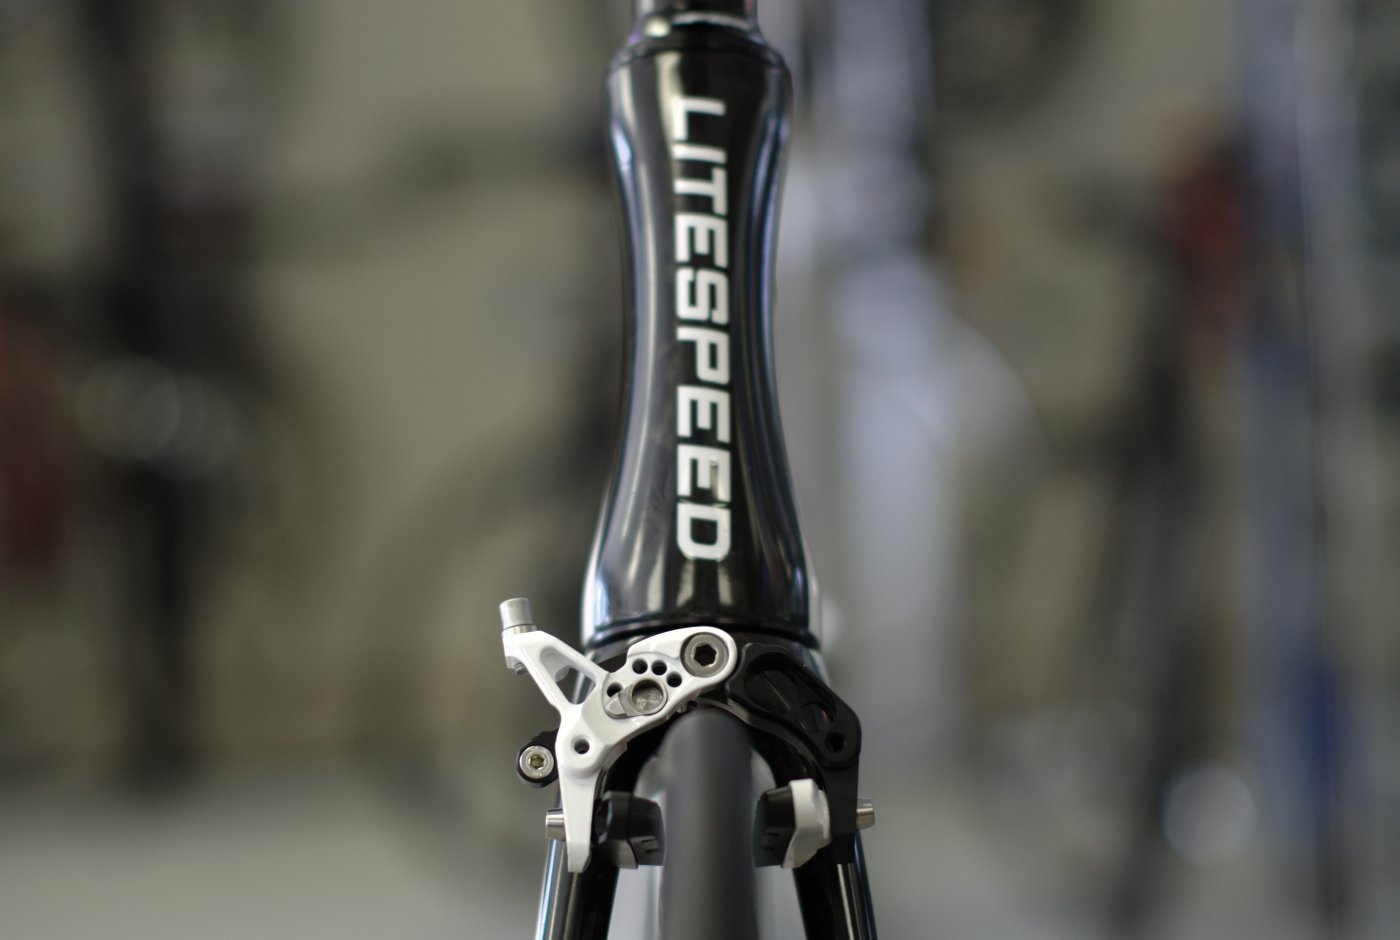 Litespeed C1 Aero Headtube and Ciamillo GSL tiranium brakes